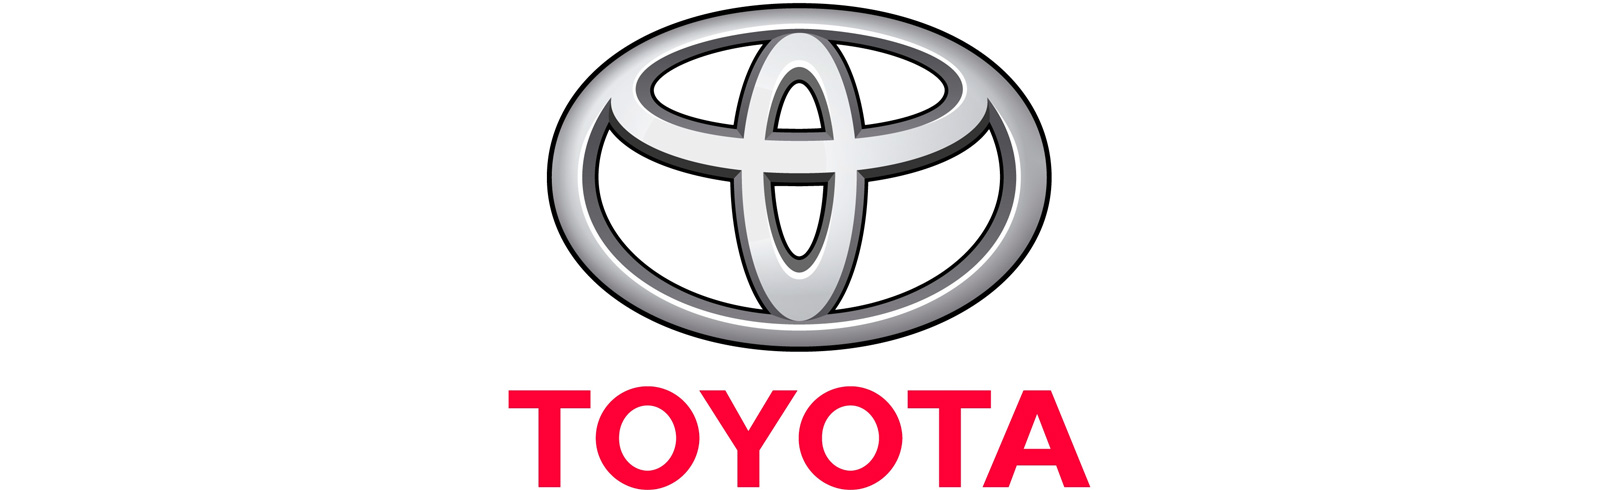 UPDATED; Toyota speeds up BEV plans, will launch an ultra-compact two-seat car